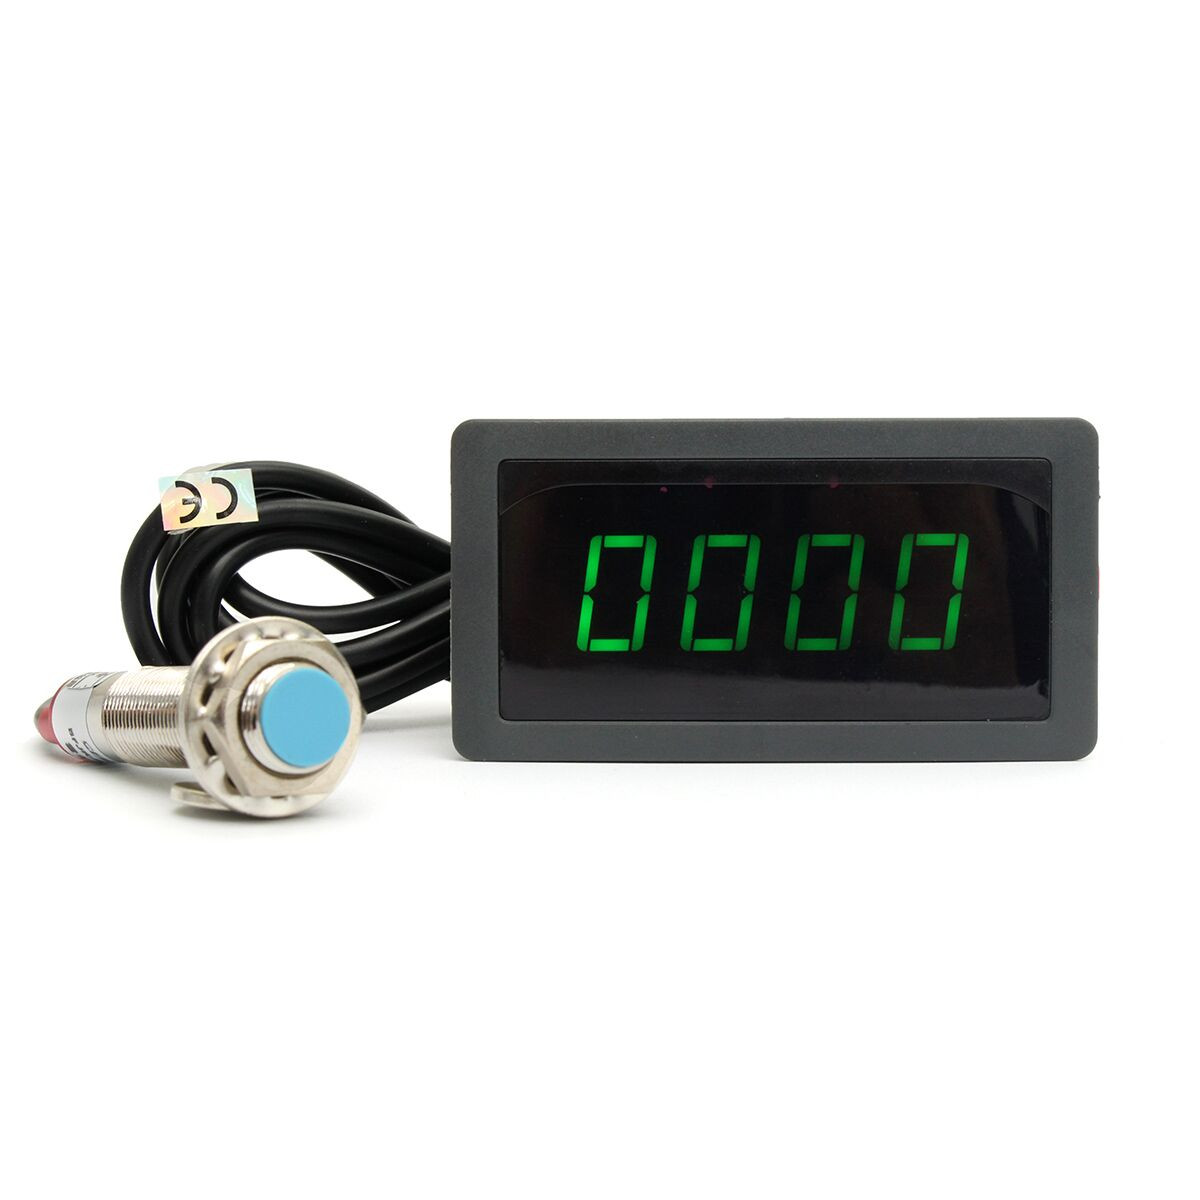 4 Digital Green LED Tachometer RPM Speed Meter+Proximity Switch Sensor 12V Measure range 5-9999RPM photoelectric switch digital sensor gx 3s sunx proximity switch